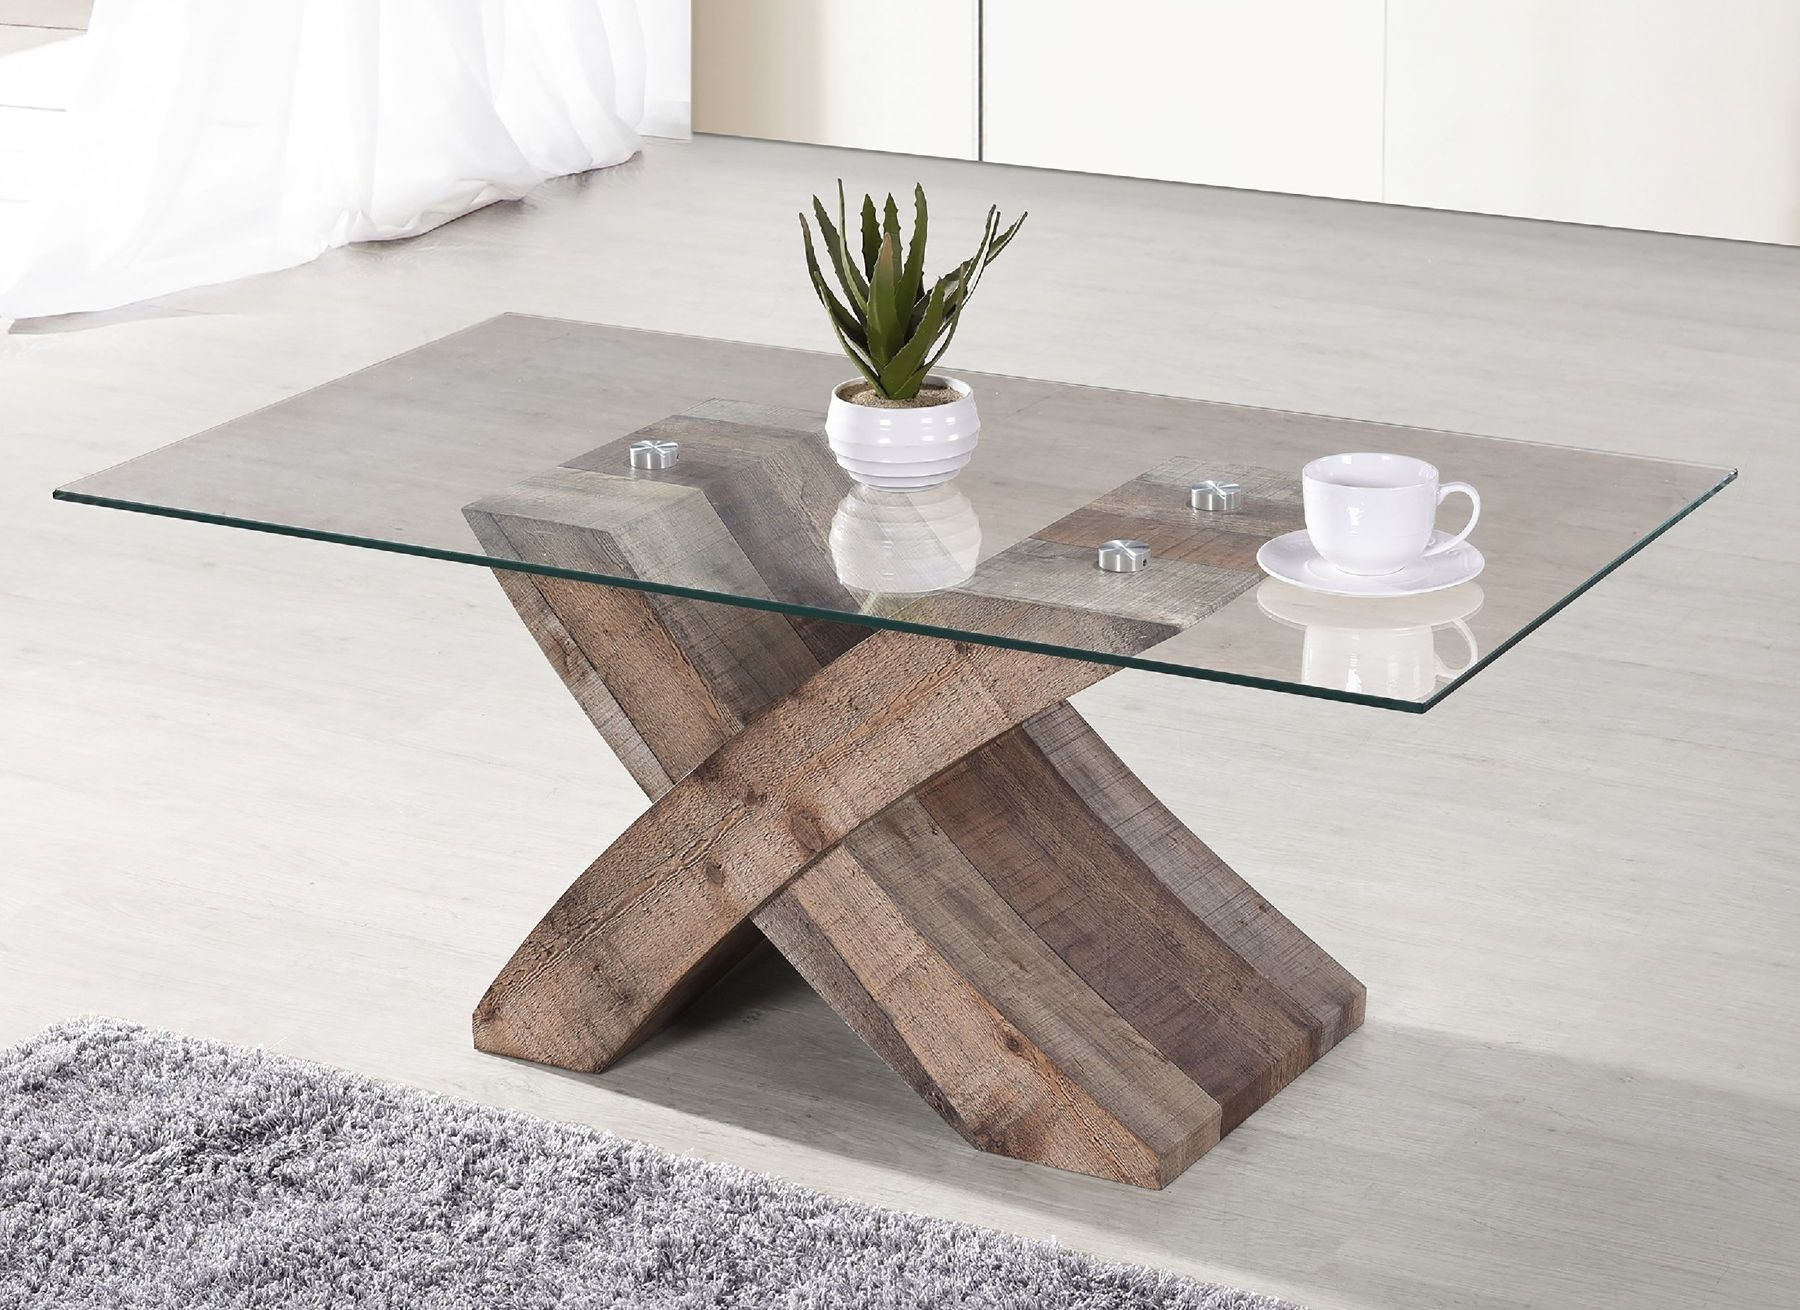 Elden Coffee Table Ct701 Casamode Furniture Coffee Tables In 2021 Modern Glass Coffee Table Glass Top Coffee Table Coffee Table Wood [ 1310 x 1800 Pixel ]